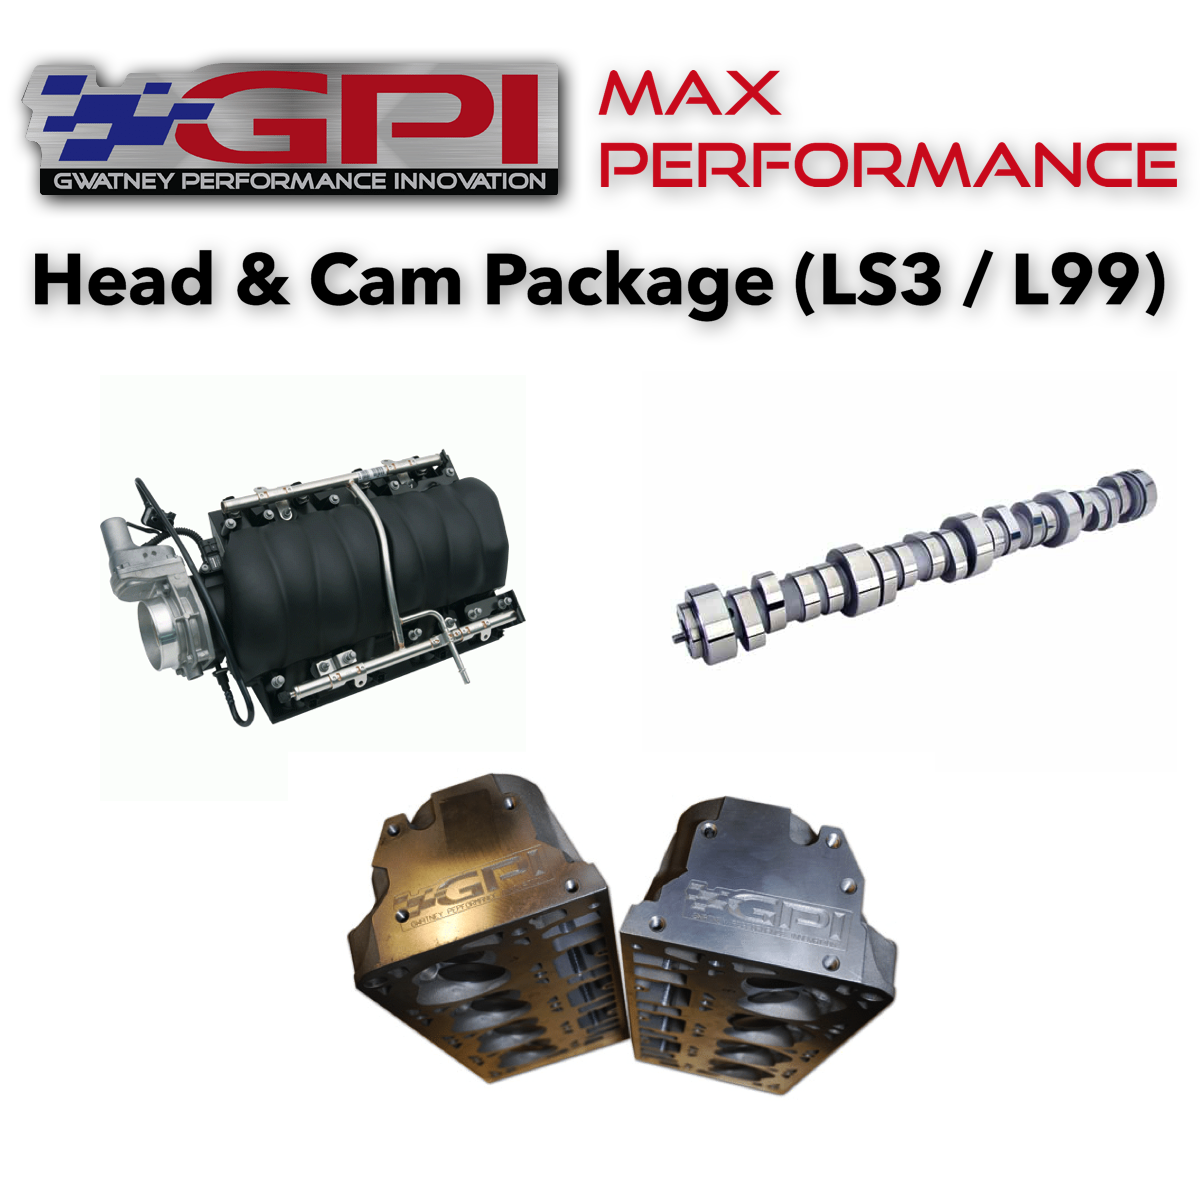 GPI - MAX Performance Head & Cam Package (LS3 / L99)